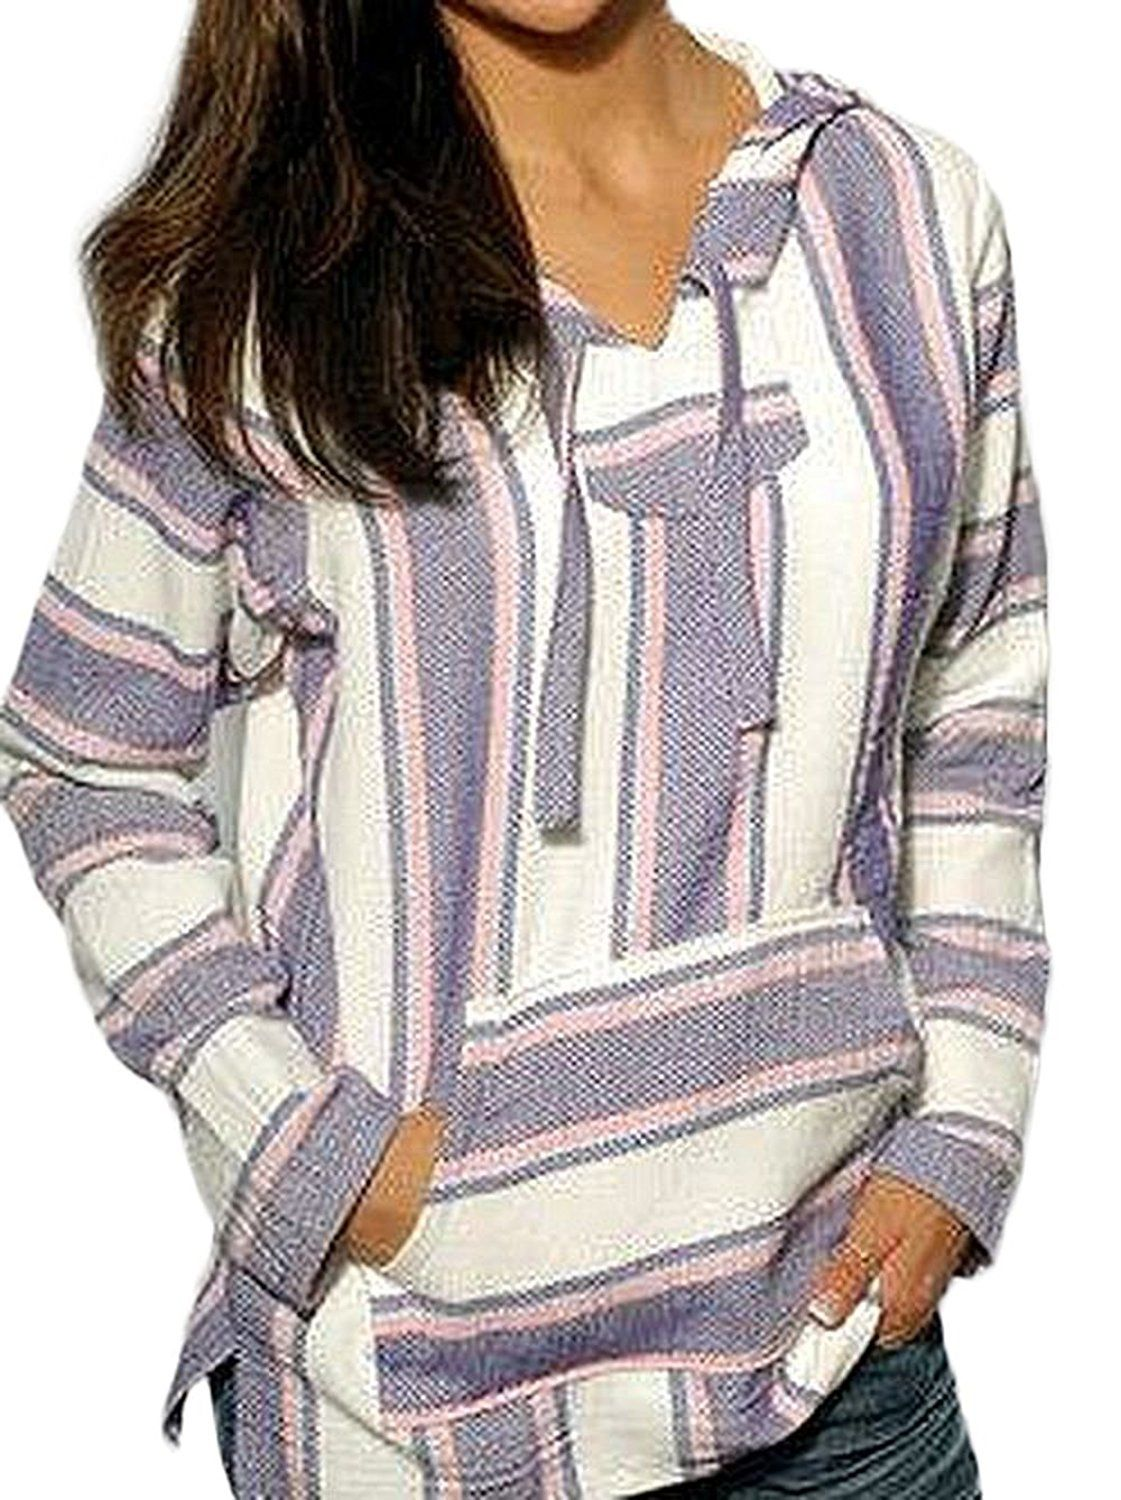 Mexican Baja Hoodie Sweater Jerga Pullover Lavender Pink White ...